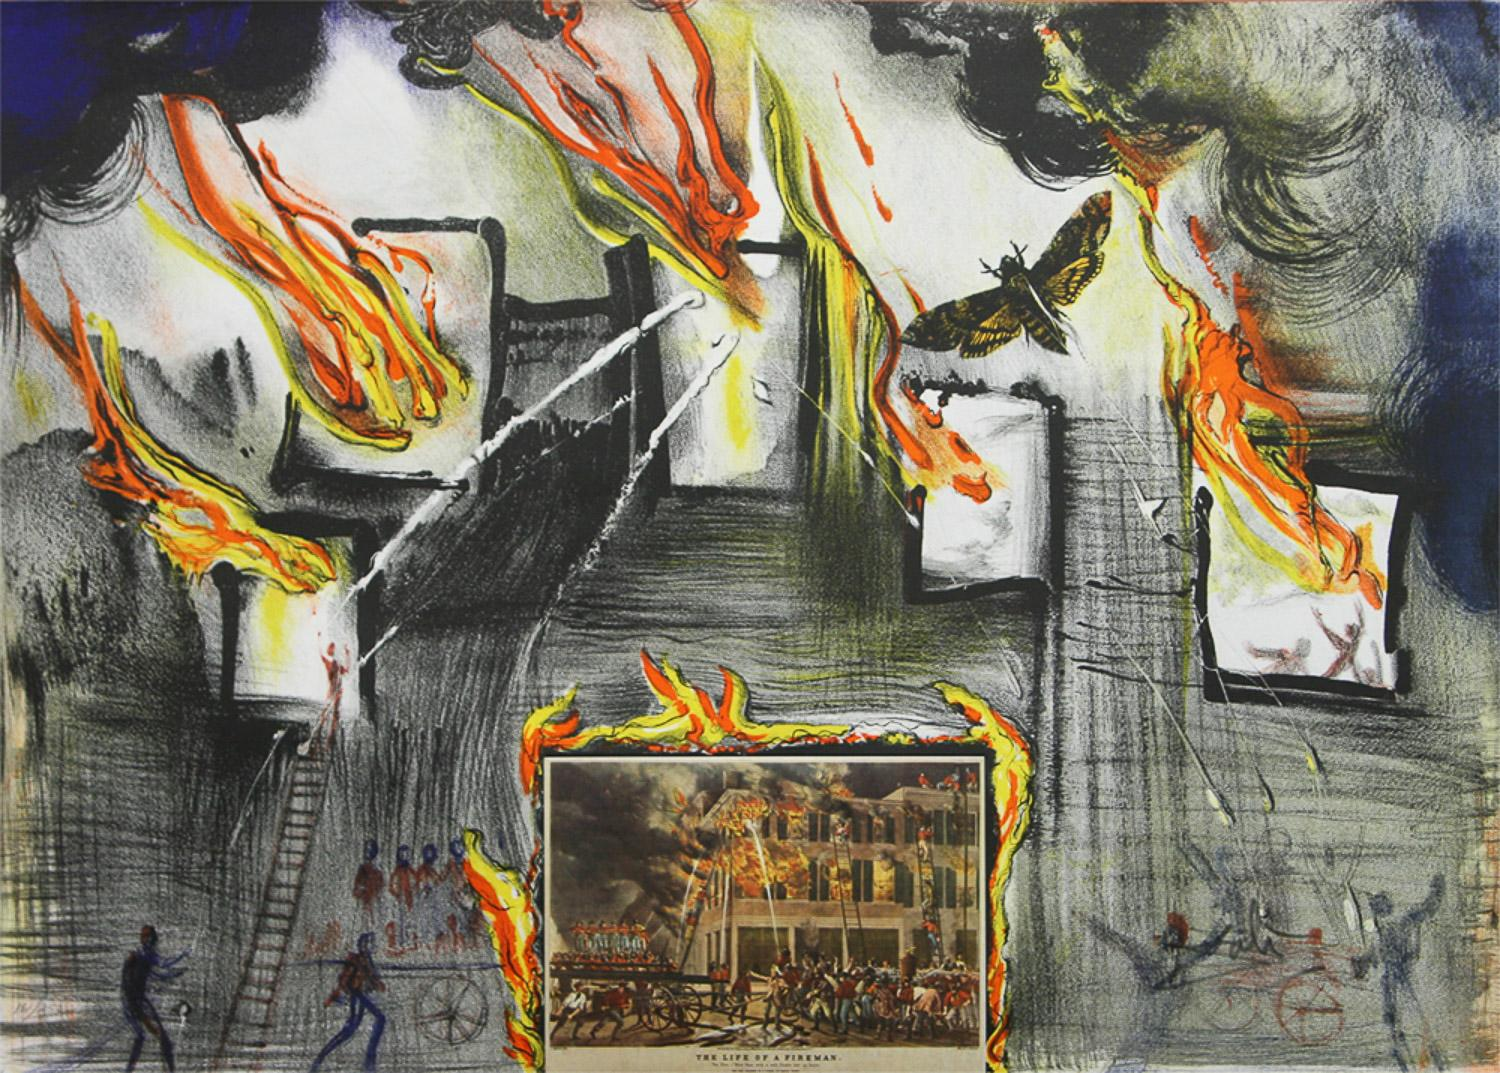 Fire, Fire Fire The World of Currier & Ives as interpreted by Salvador Dali